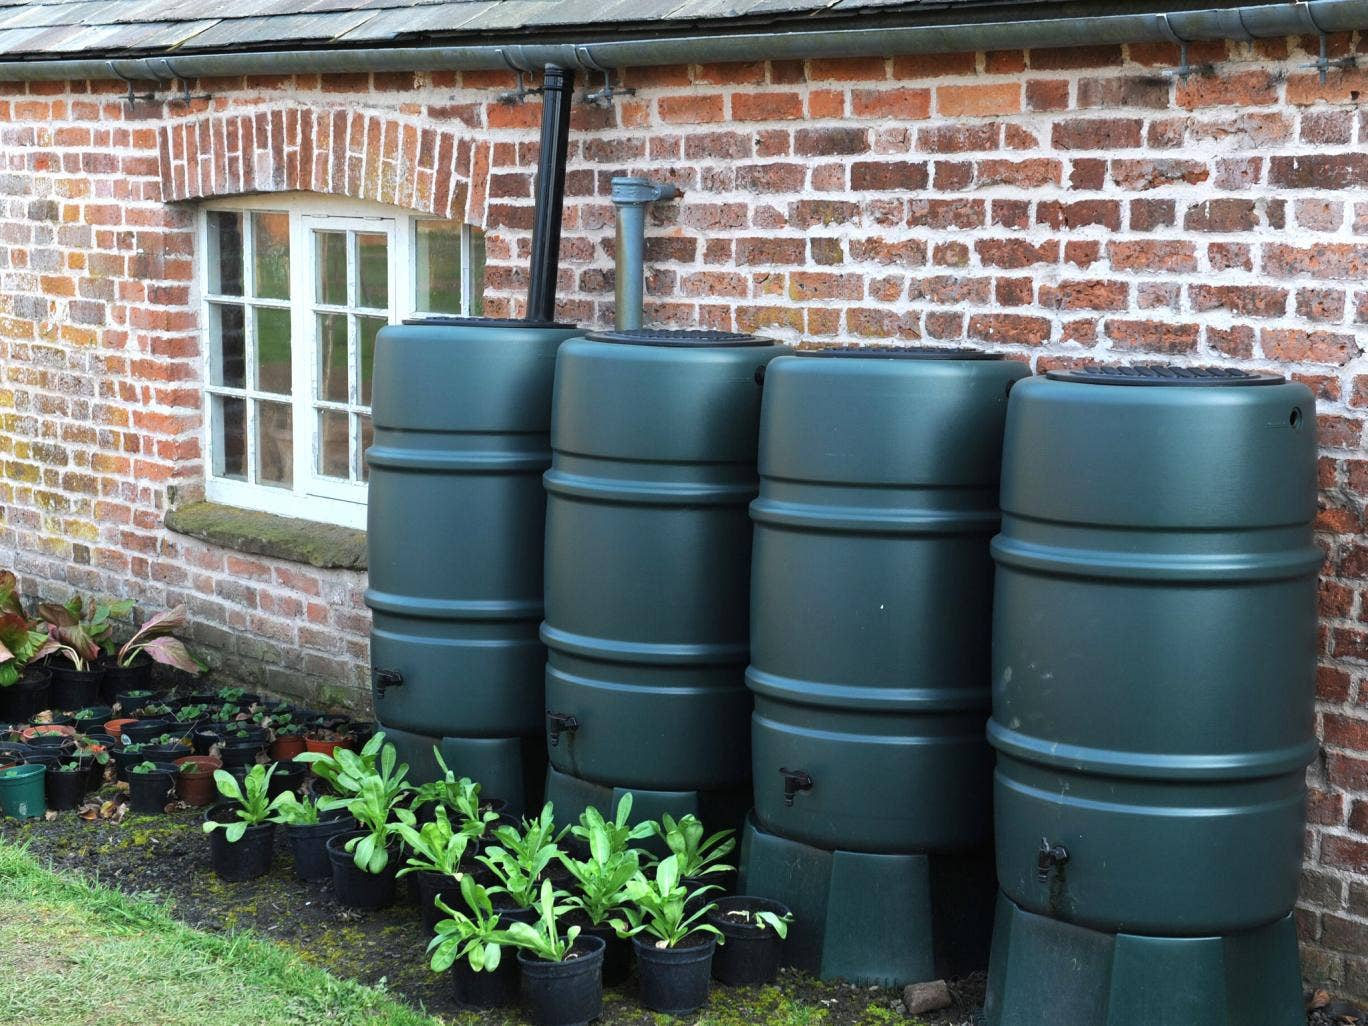 The sheer number of water butts spread across the UK creates a network of easily accessible prime mosquito larvae habitat